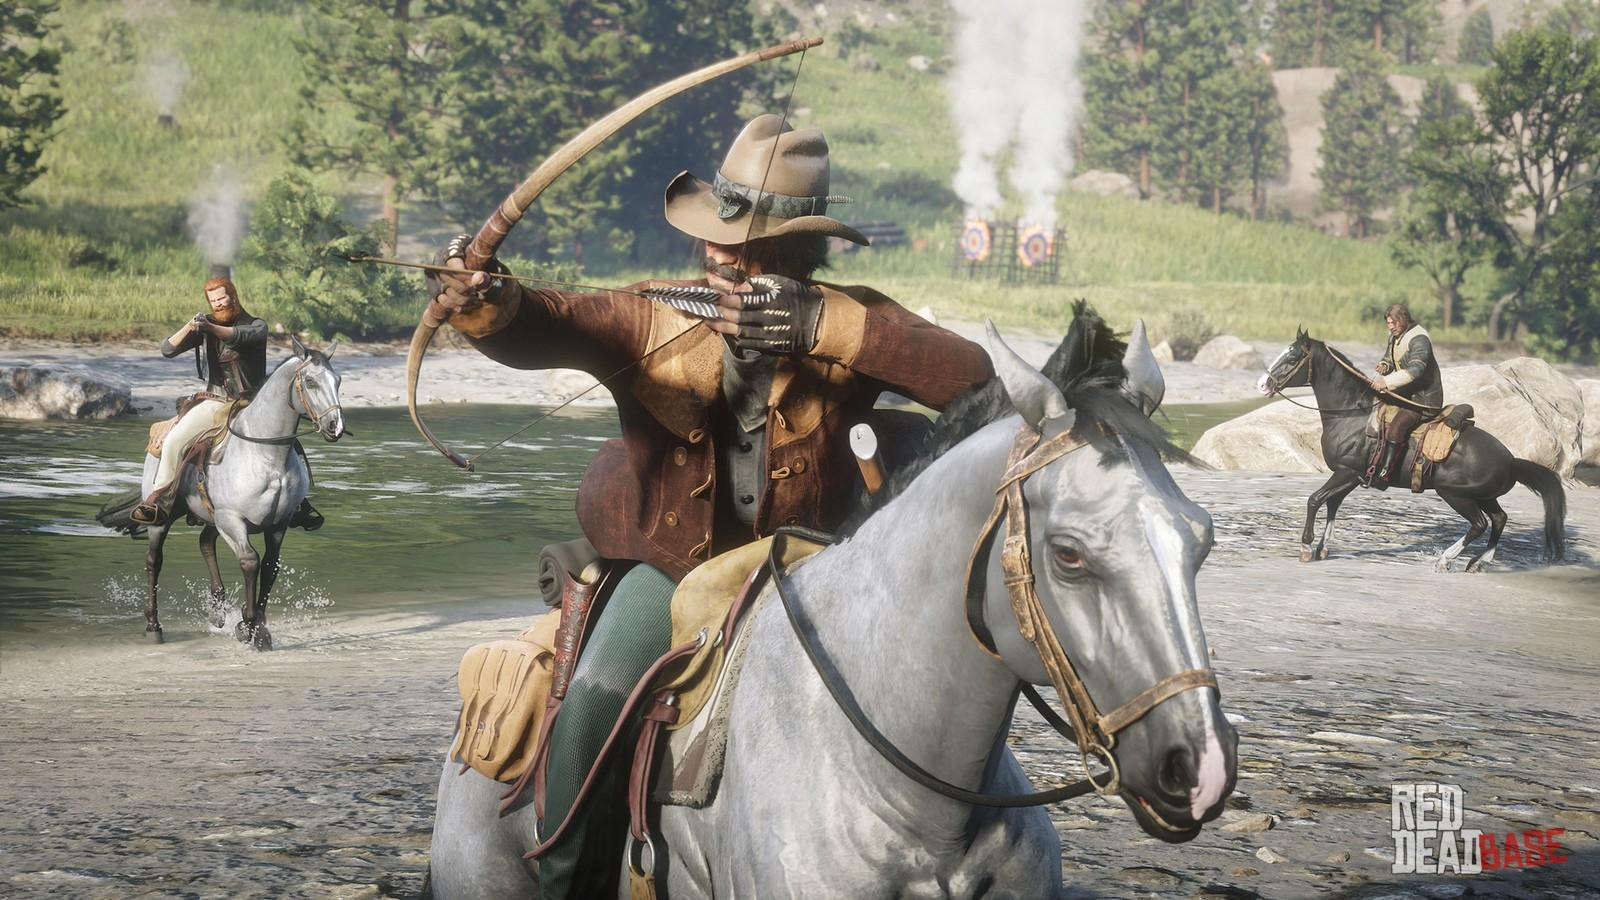 Red Dead Redemption 2: Details on PS4 Early Access Content